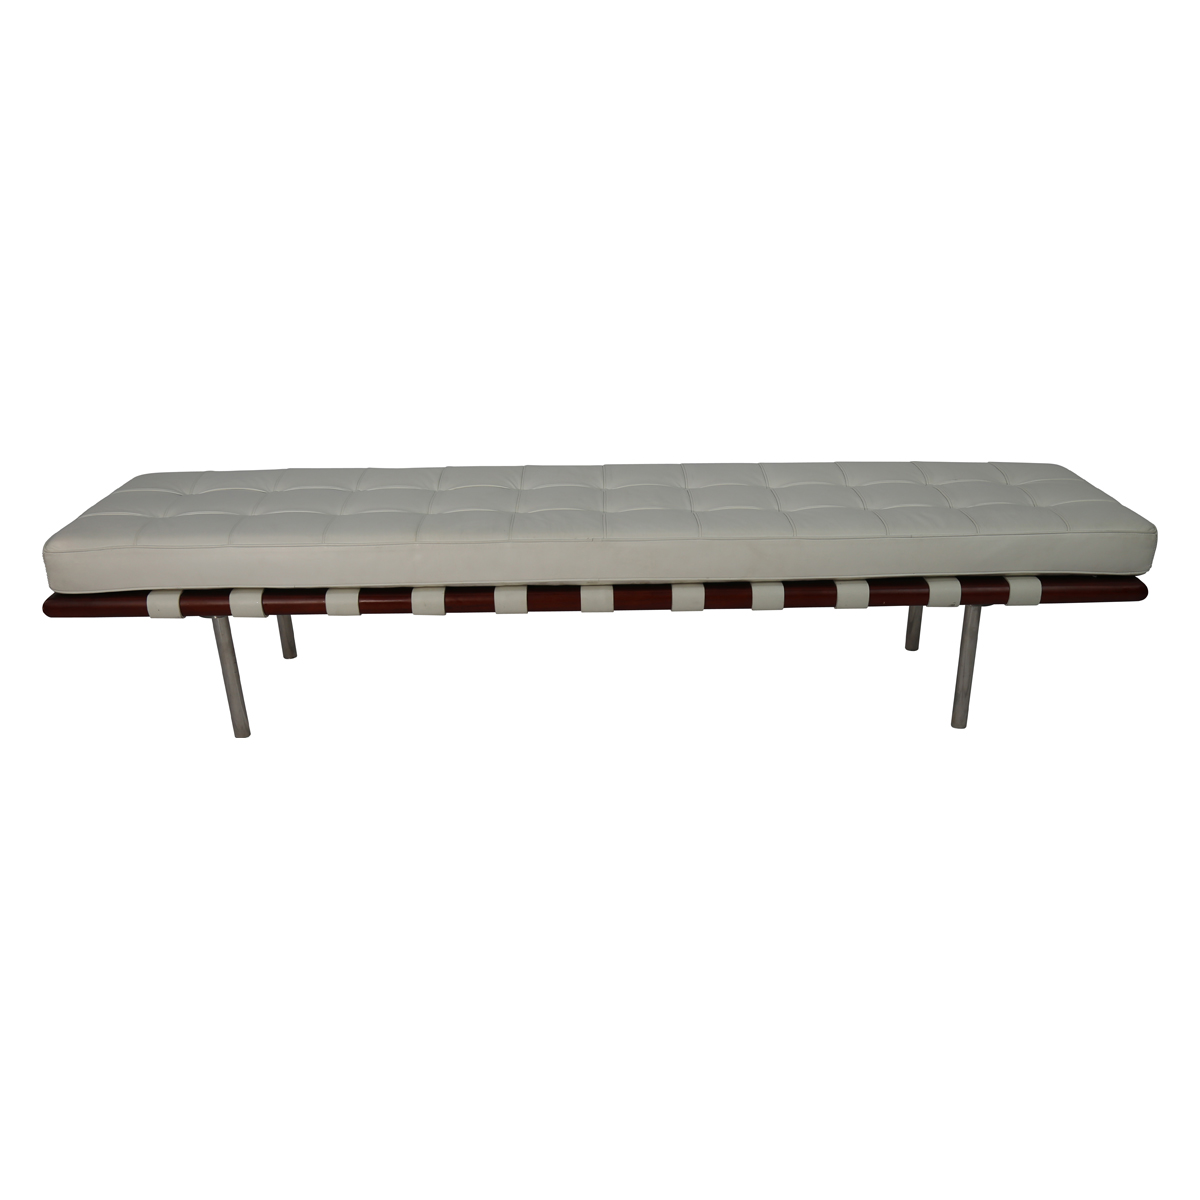 Mid Century White Leather Barcelona Bench In Style Of Mies Van Der Rohe Bk